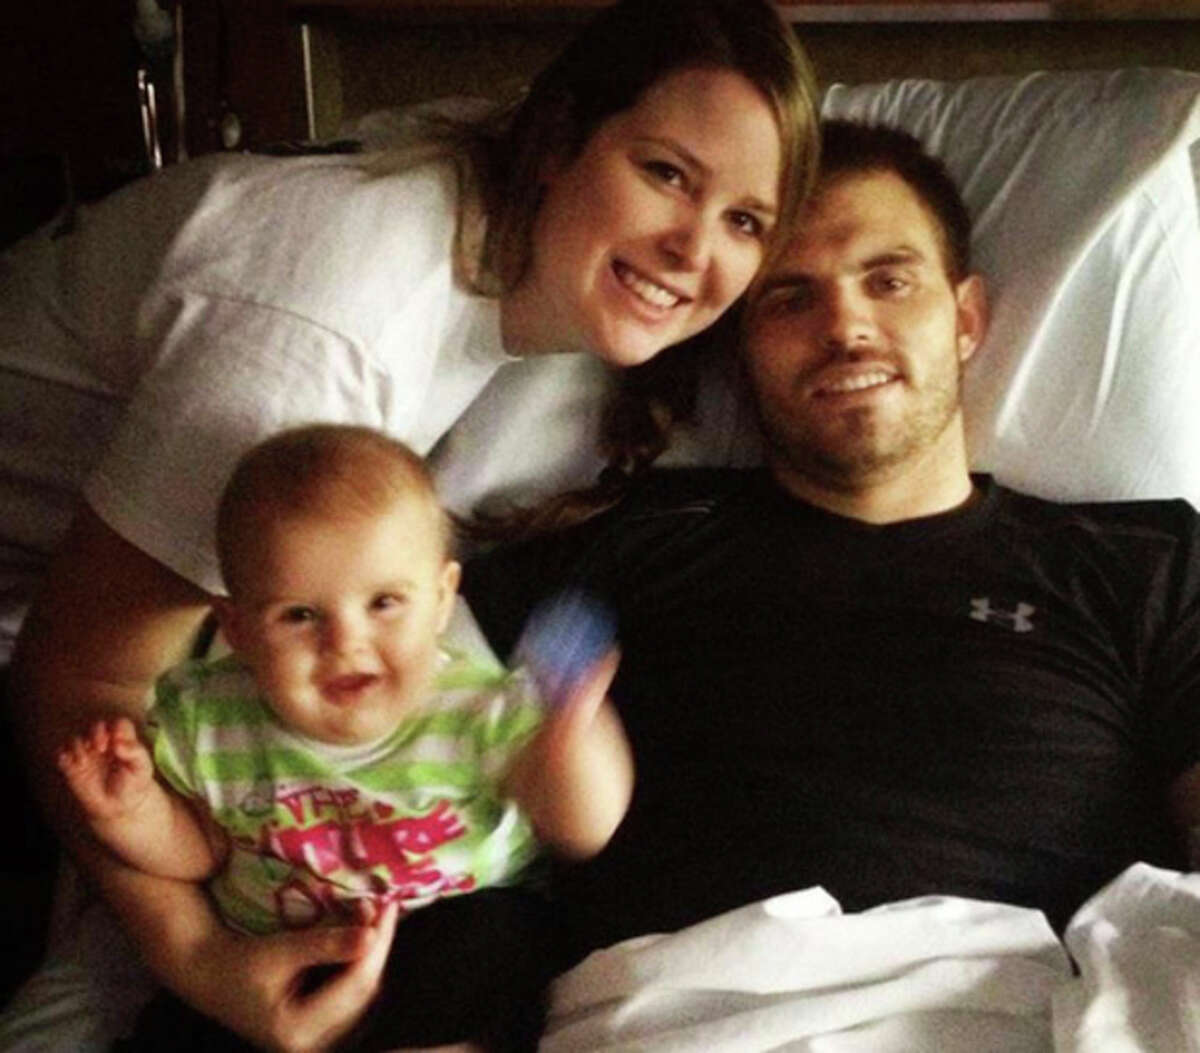 In an undated photo provided by the Mills family, Travis Mills is seen in his hospital bed with his wife Kelsey and daughter Chloe at the Walter Reed National Military Medical Center in Bethesda, Md. Mills served two deployments to Afghanistan without a major injury, and then is a second an IED explosion changed everything. Today the 25-year-old is a quadruple amputee, one of only five servicemen from any military branch to have survived such an injury during the wars in Iraq and Afghanistan, is recovering and describes his situation plainly: I just had a bad day at work. His family _ especially his wife, Kelsey _ admires him for that. (AP Photo/Mills Family)